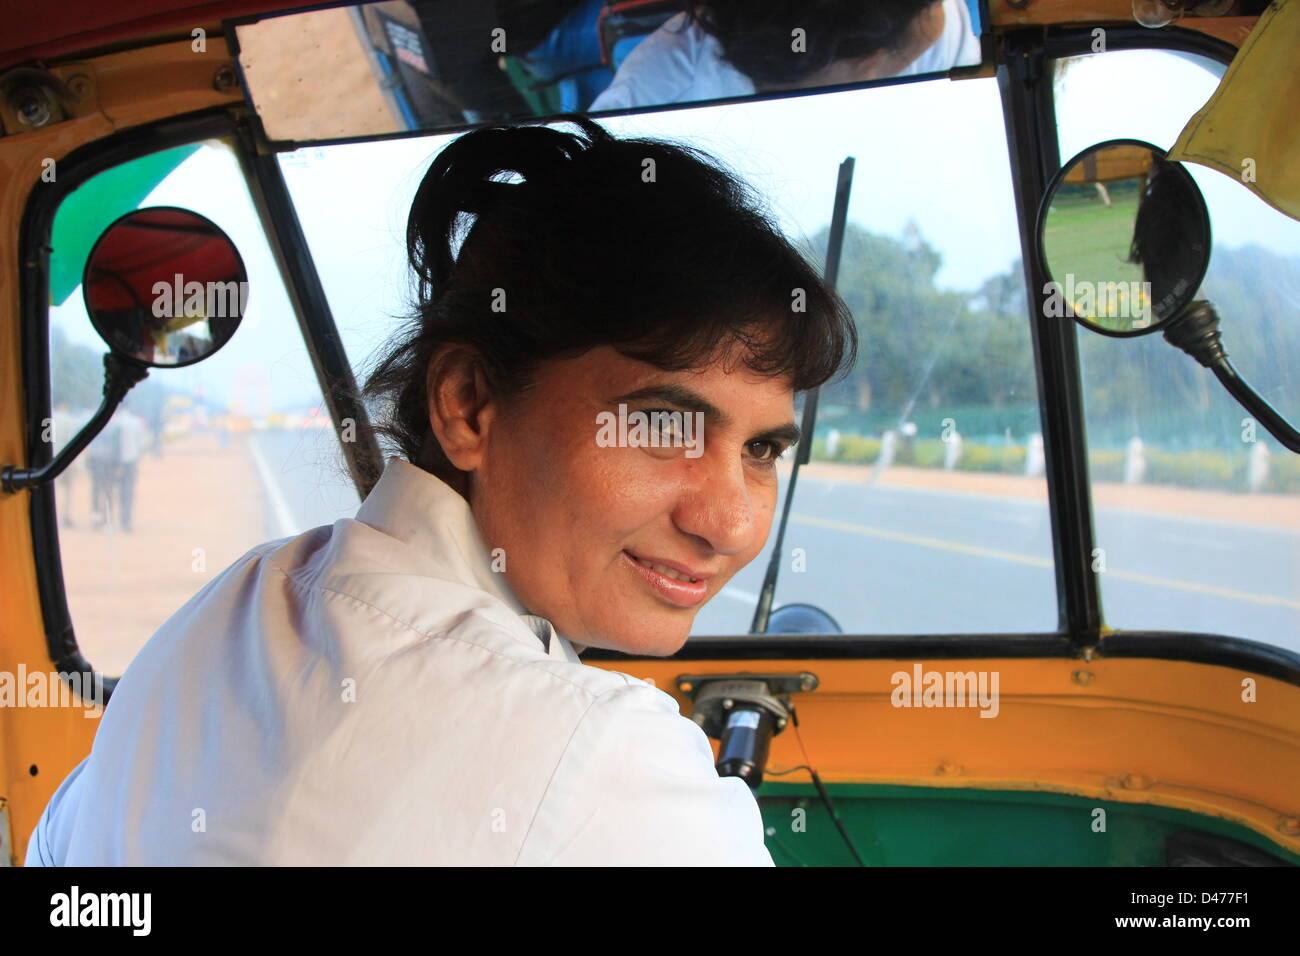 Rickshaw driver Sunita Chaudhry sits in her vehicle and smiles on a